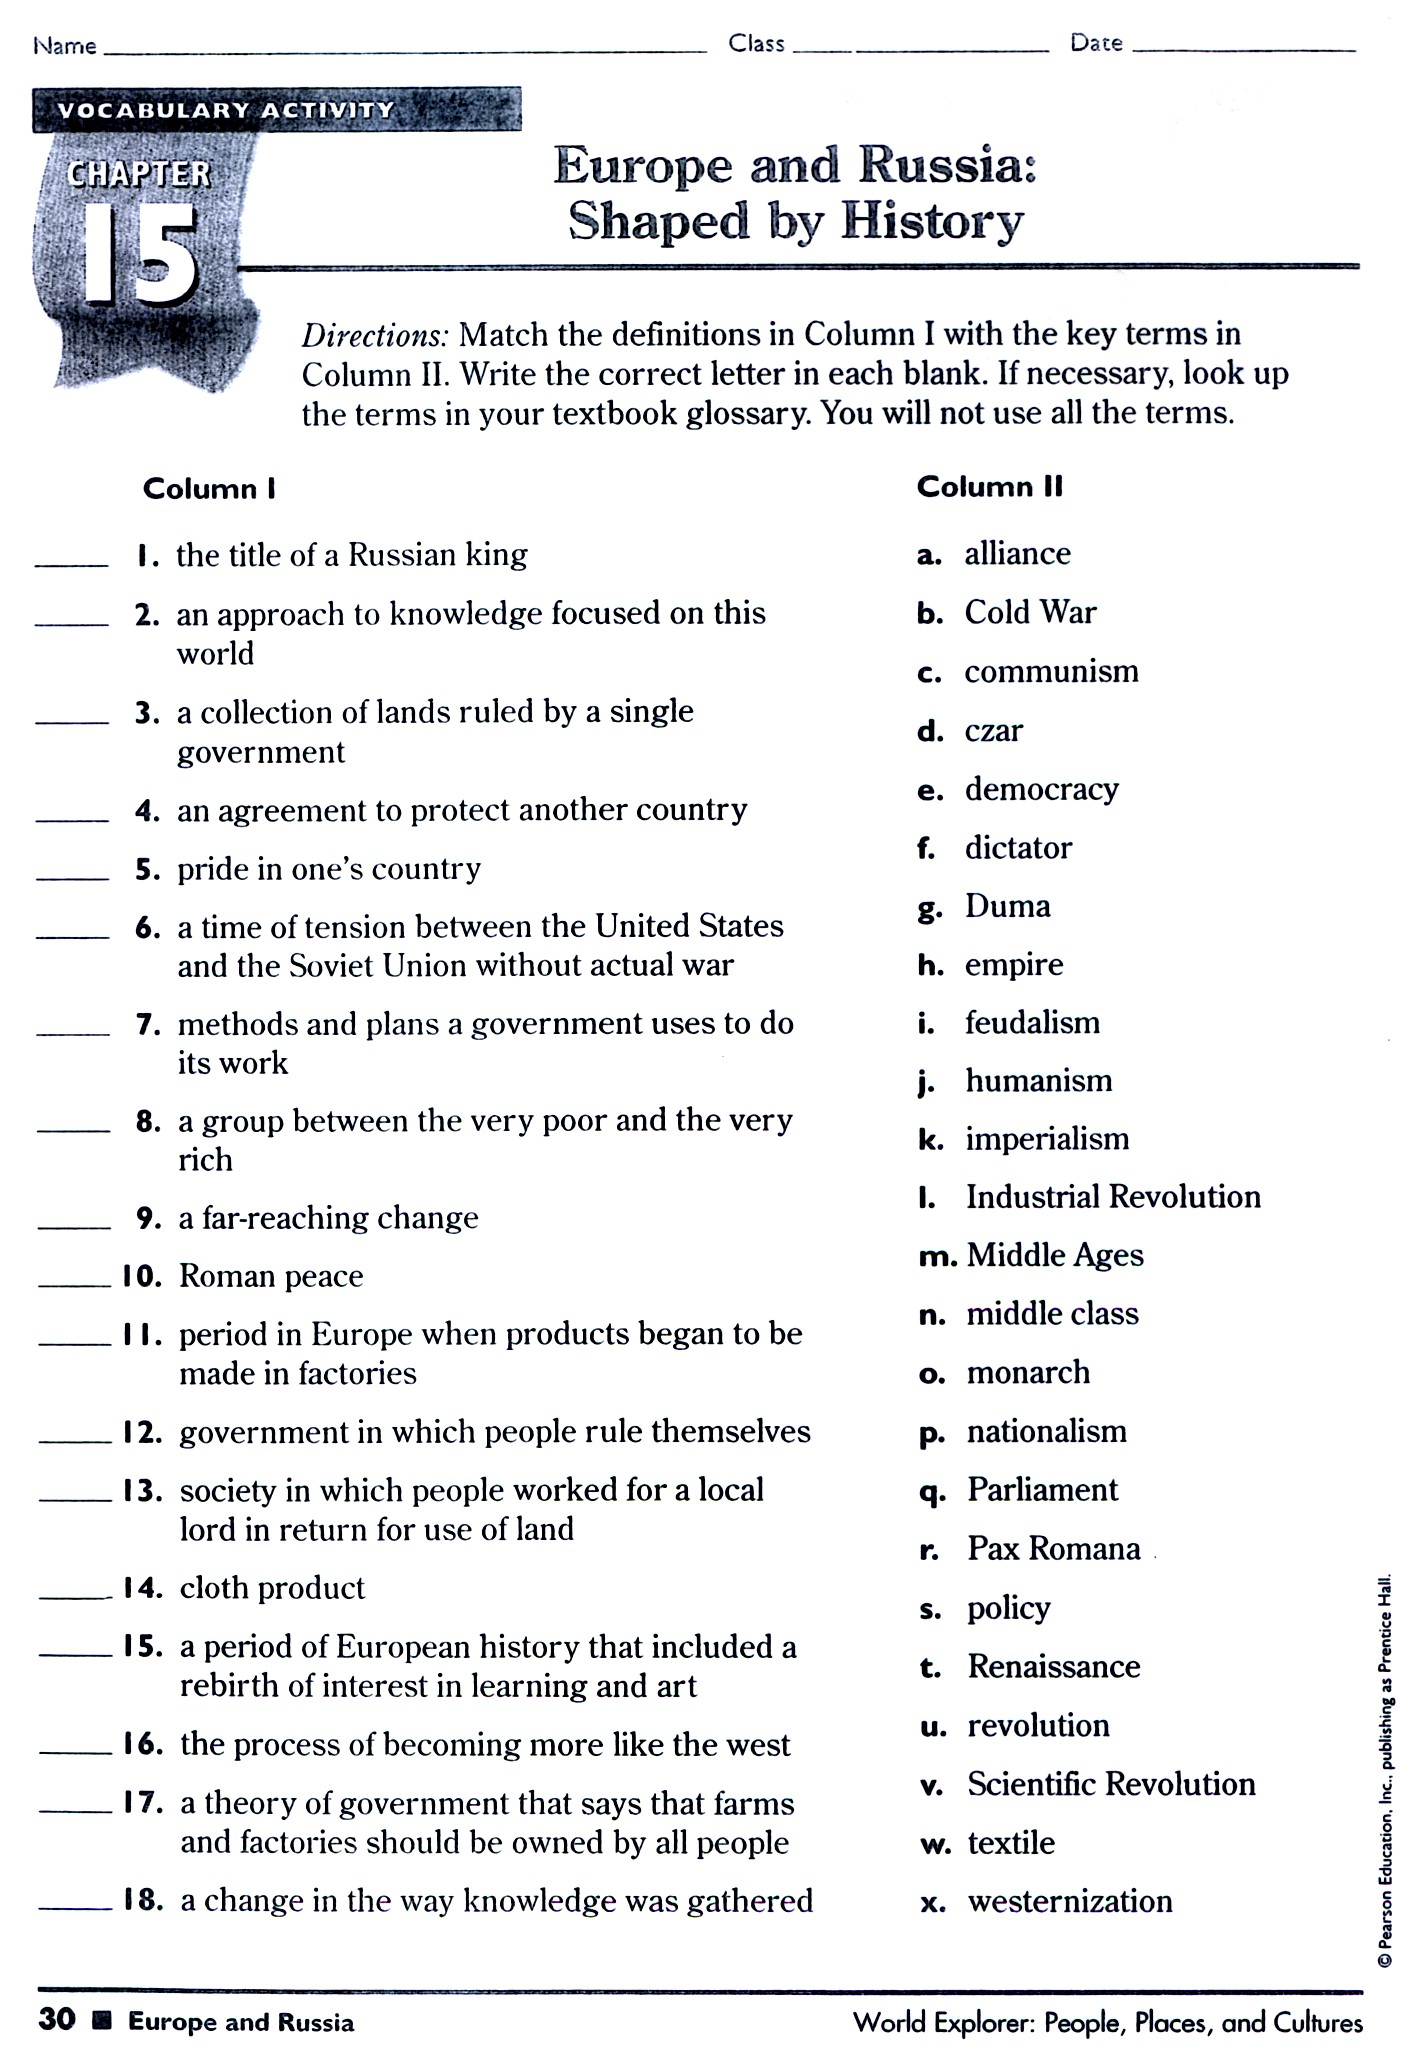 Weather Worksheet New 54 Weather And Climate Worksheets